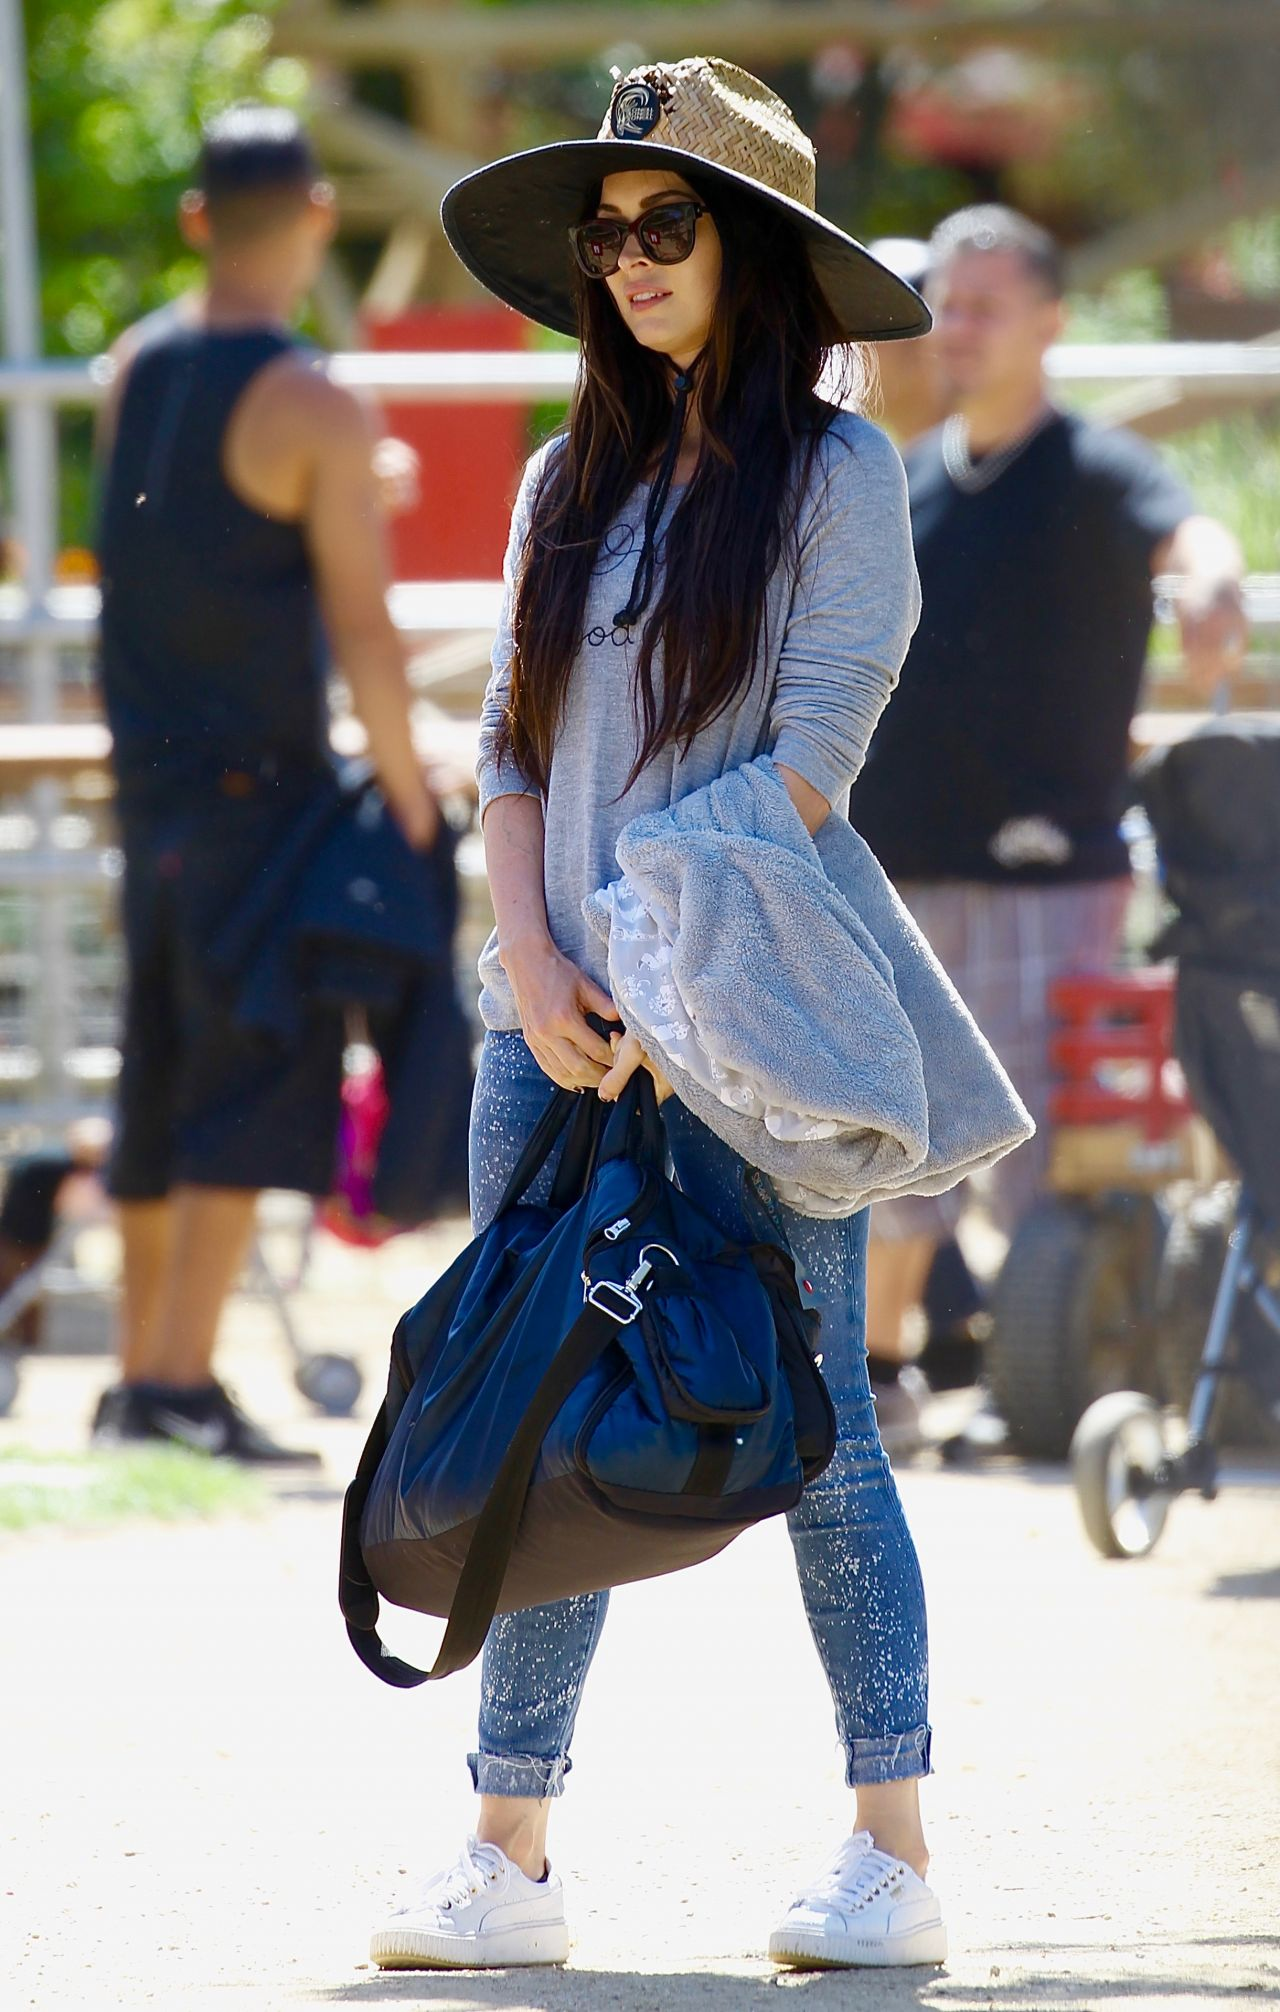 Megan Fox - Easter Egg Hunting at Underwood Family Farms in Moorpark, CA 4/11/2017